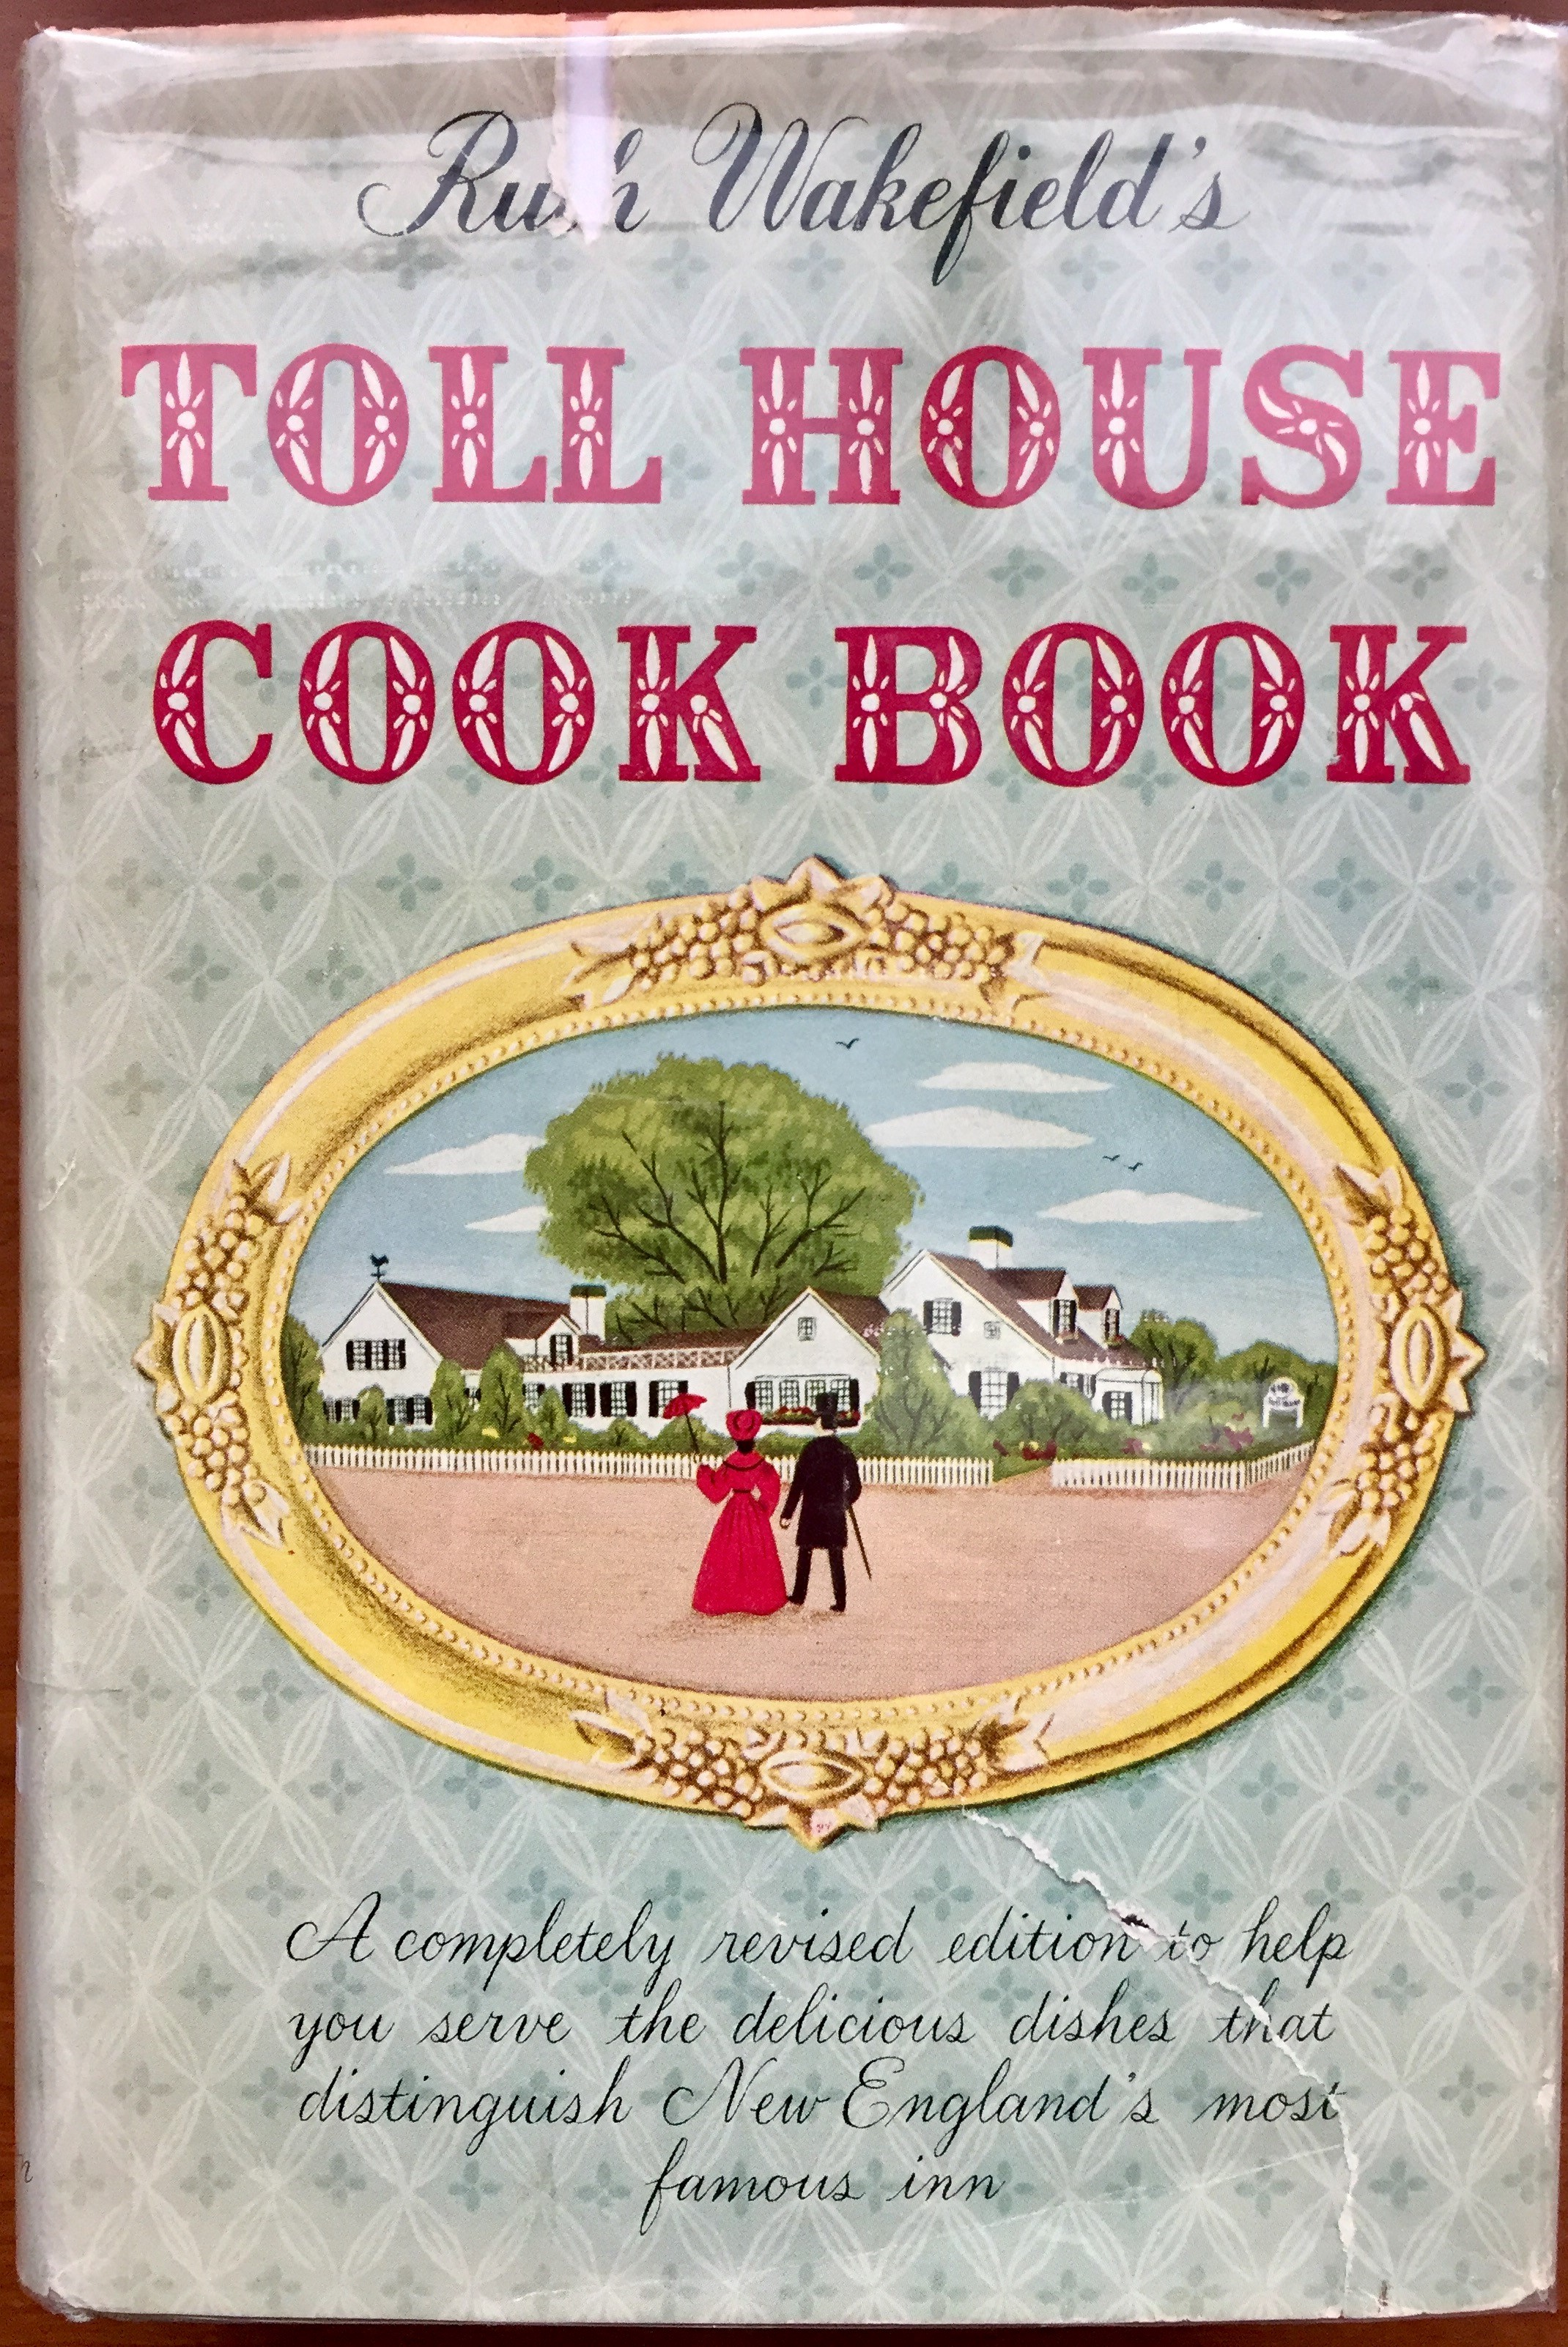 Toll House Cook Book